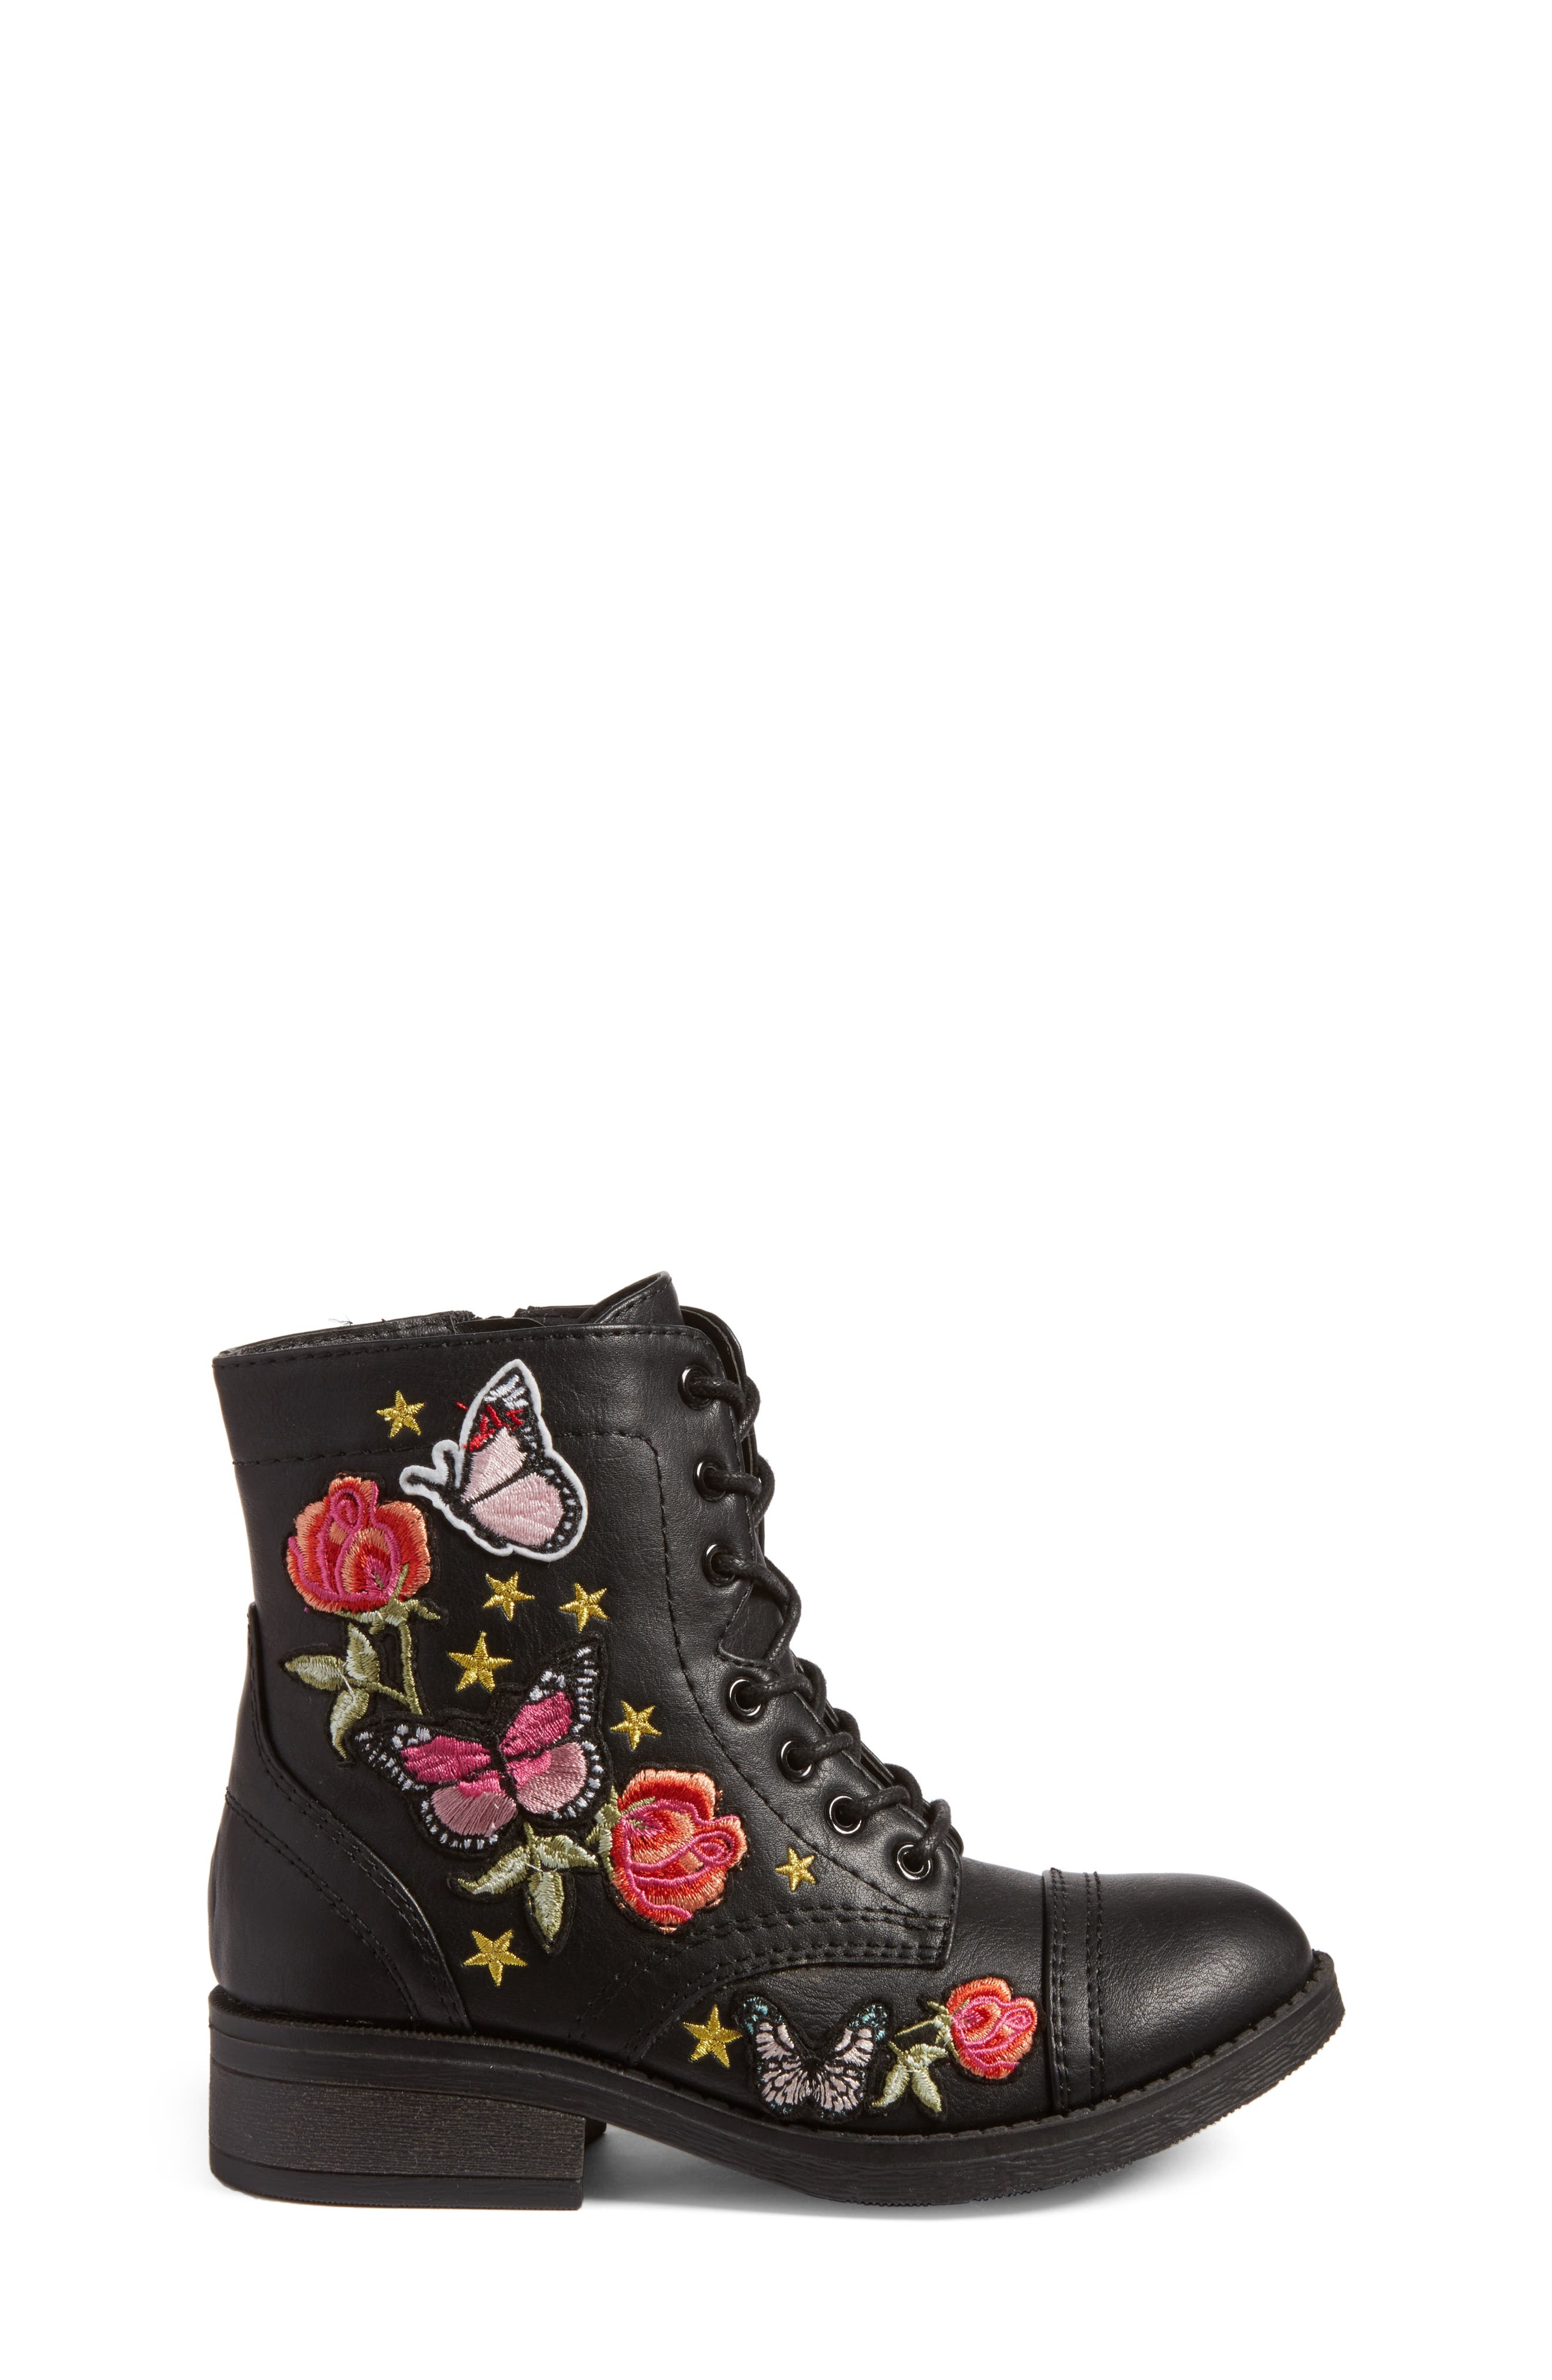 Roaring Embroidered Combat Boot,                             Alternate thumbnail 3, color,                             001